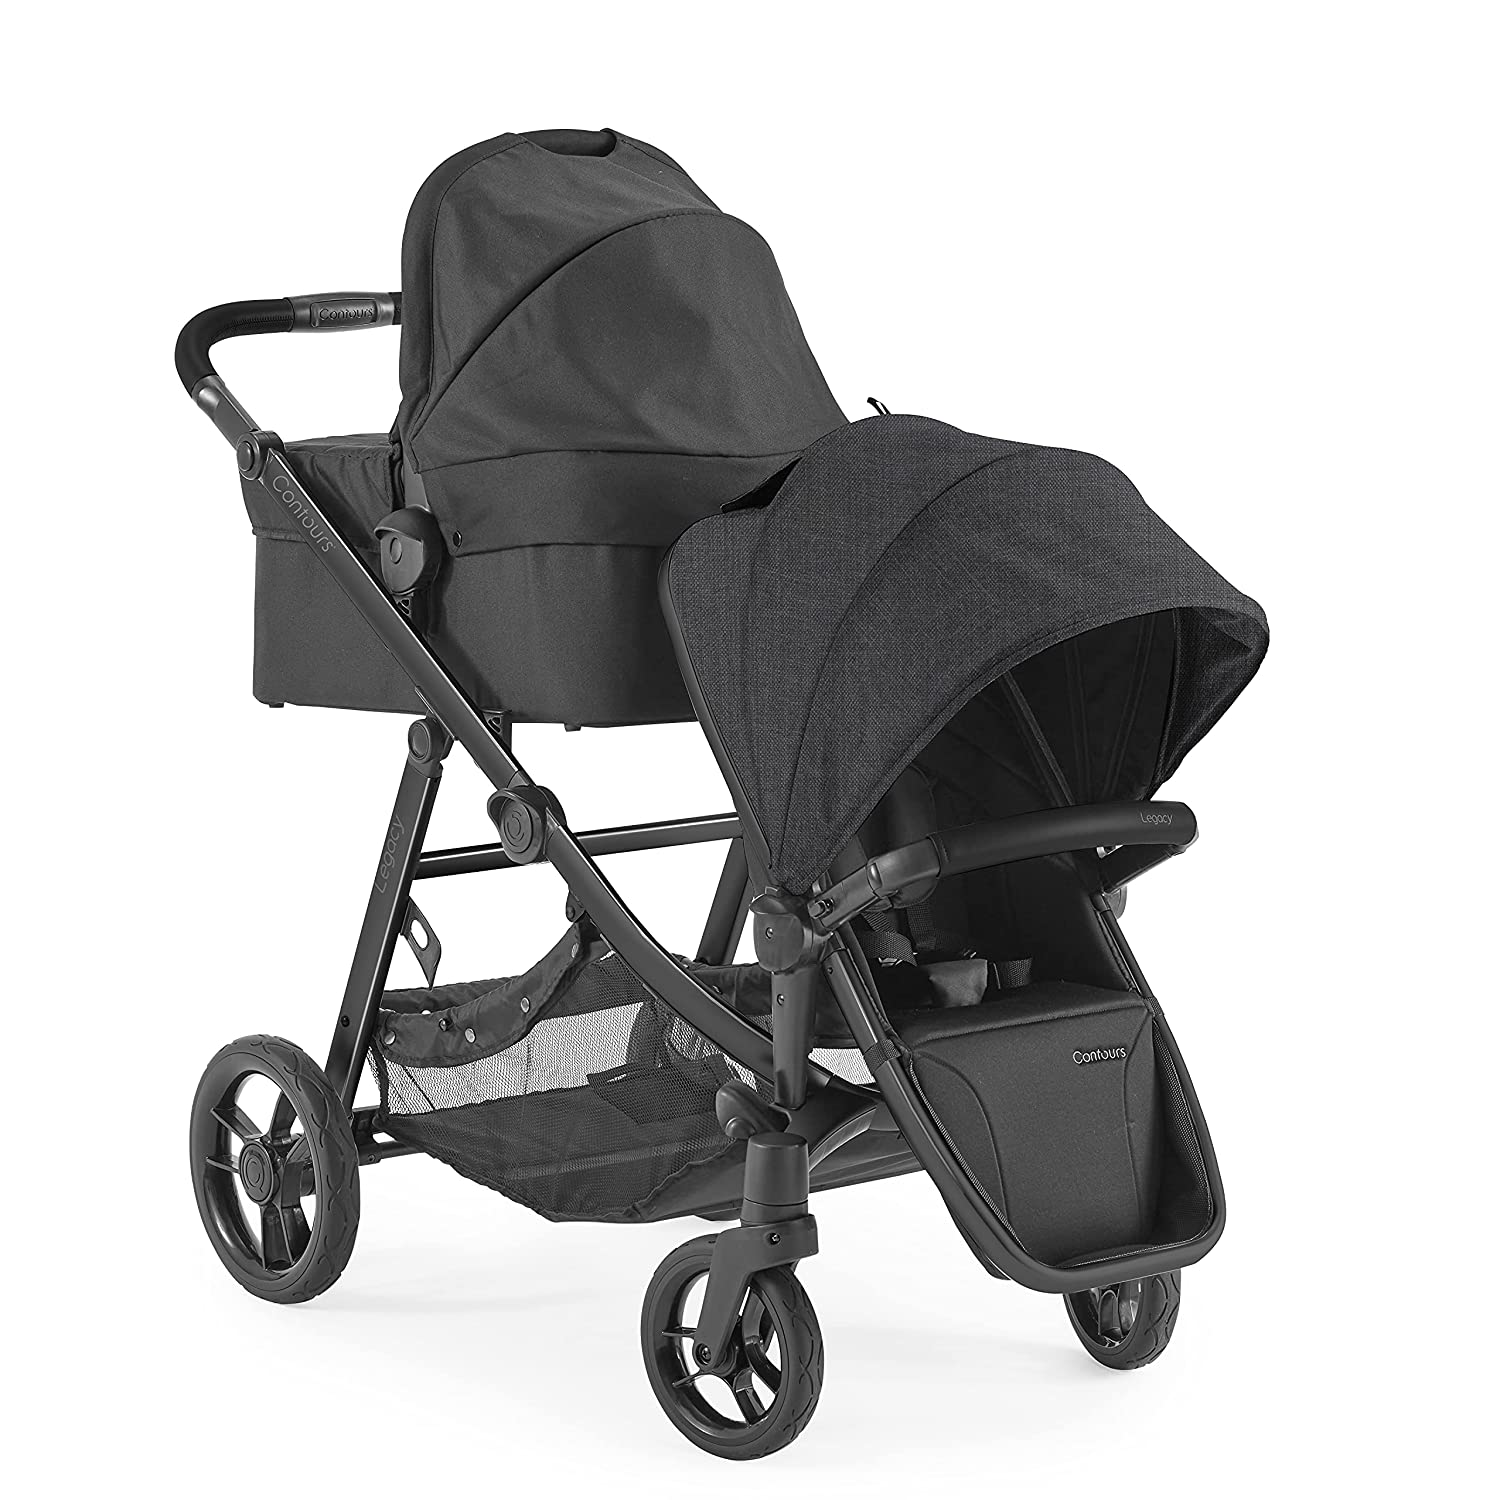 Contours - Legacy - Single to Double Convertible Stroller - Carbon